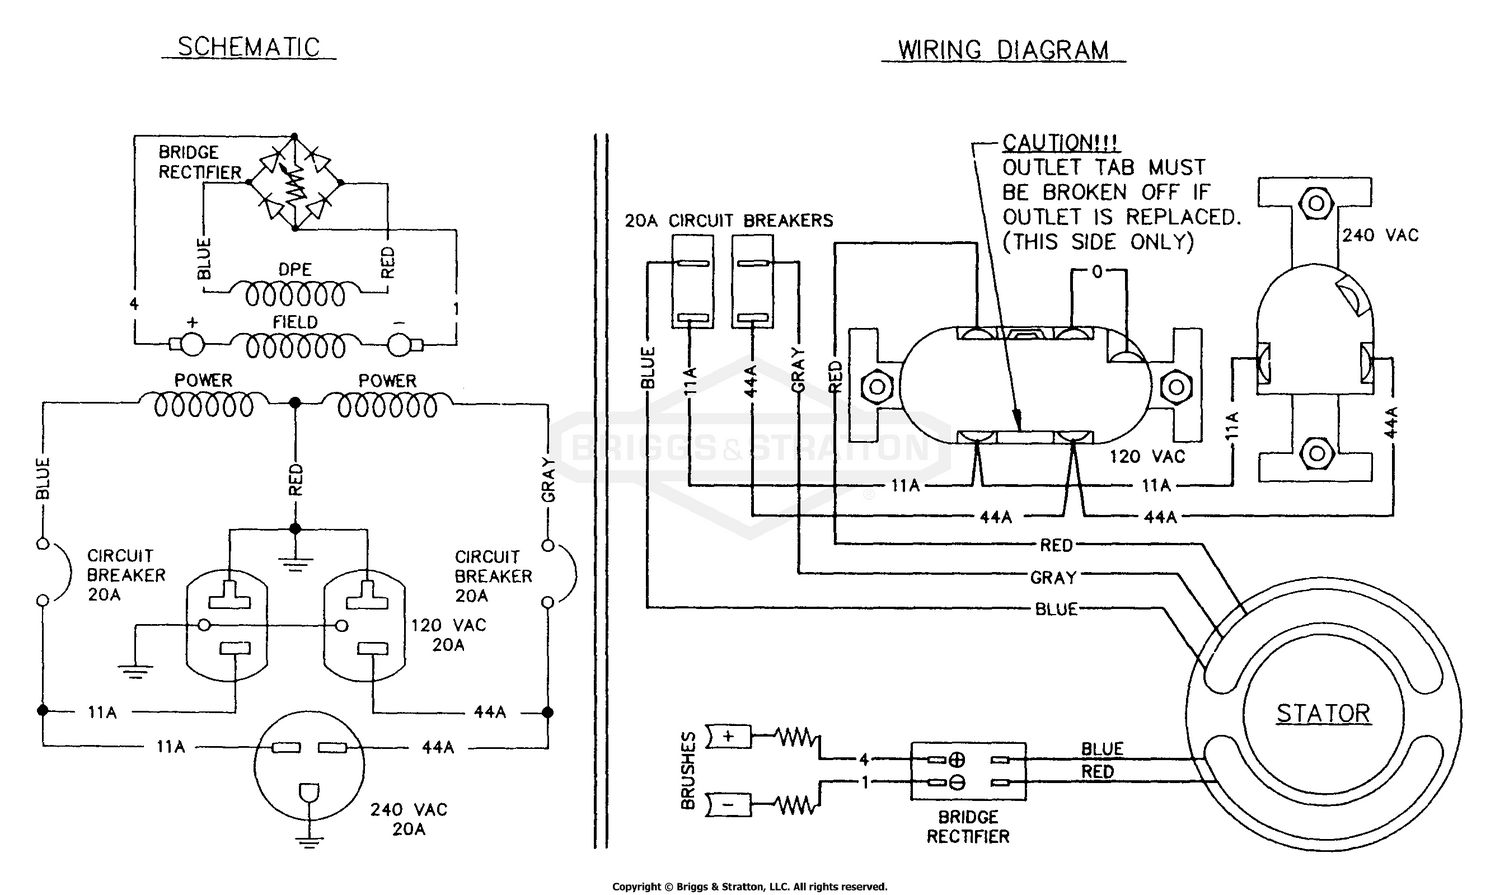 Briggs Amp Stratton Power Products Del 26072017021729 8971 4 240 Vac Plug Wiring Diagram Electrical Schematic